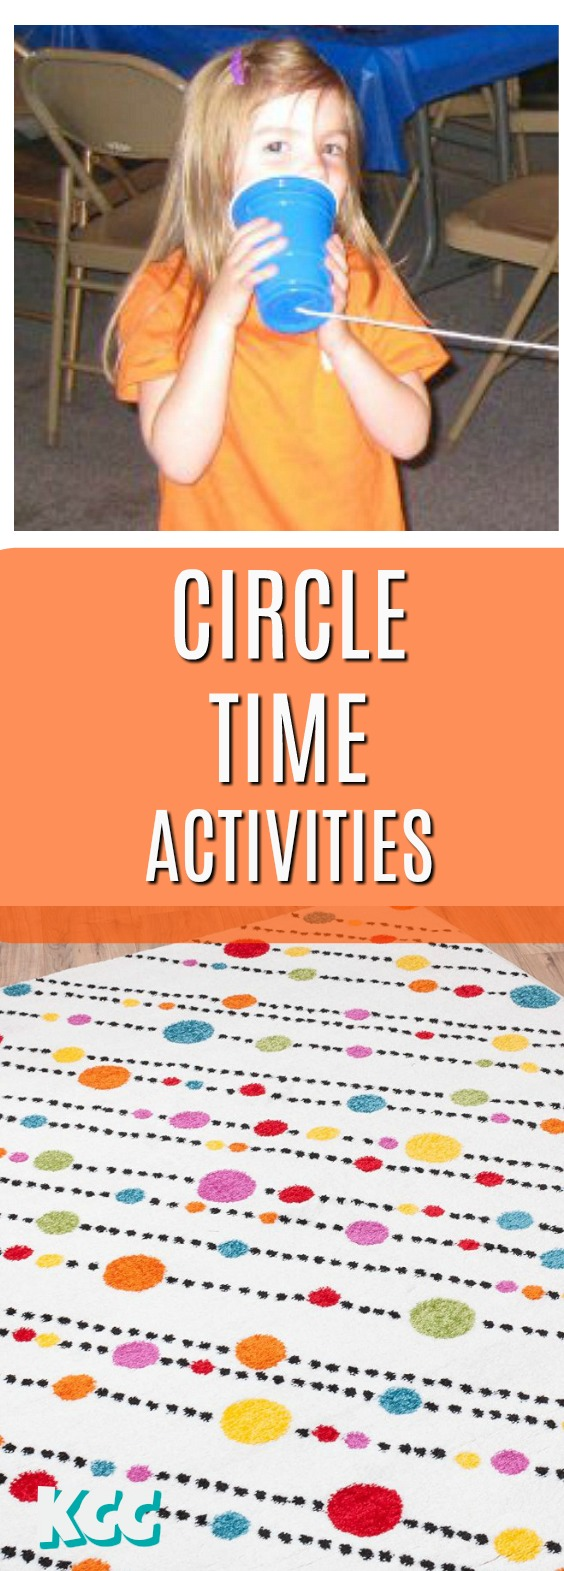 14 Circle Time Activities and Ideas for Preschoolers